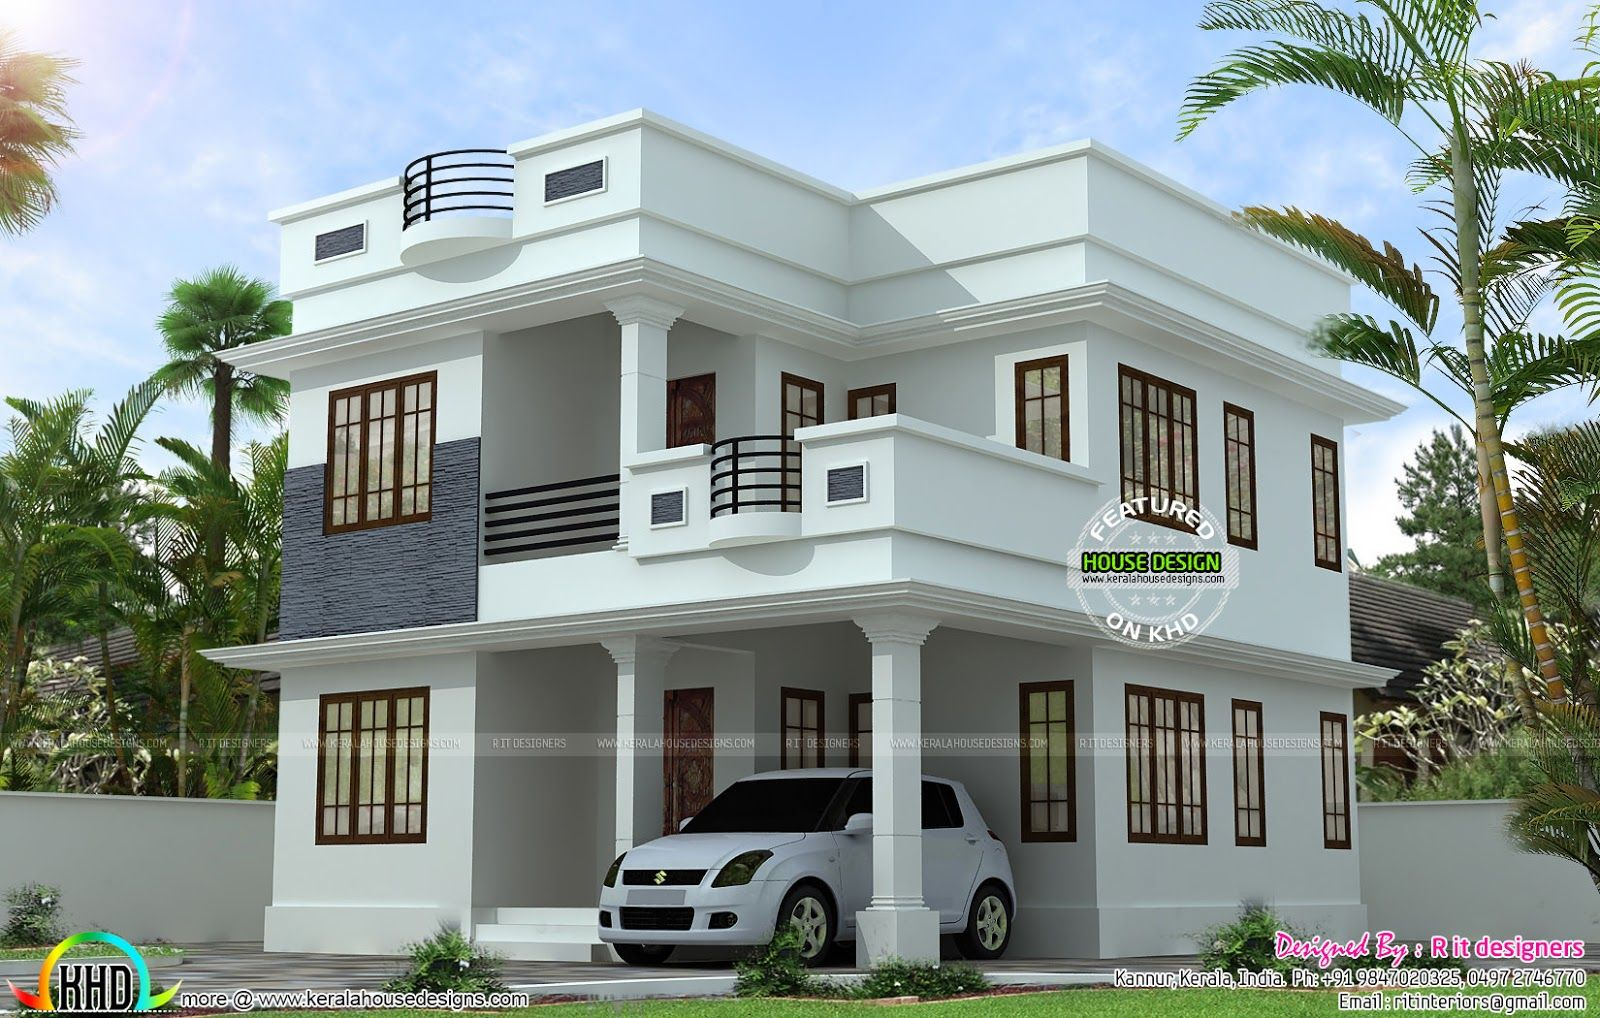 neat and simple small house plan kerala home design and floor plans. Interior Design Ideas. Home Design Ideas